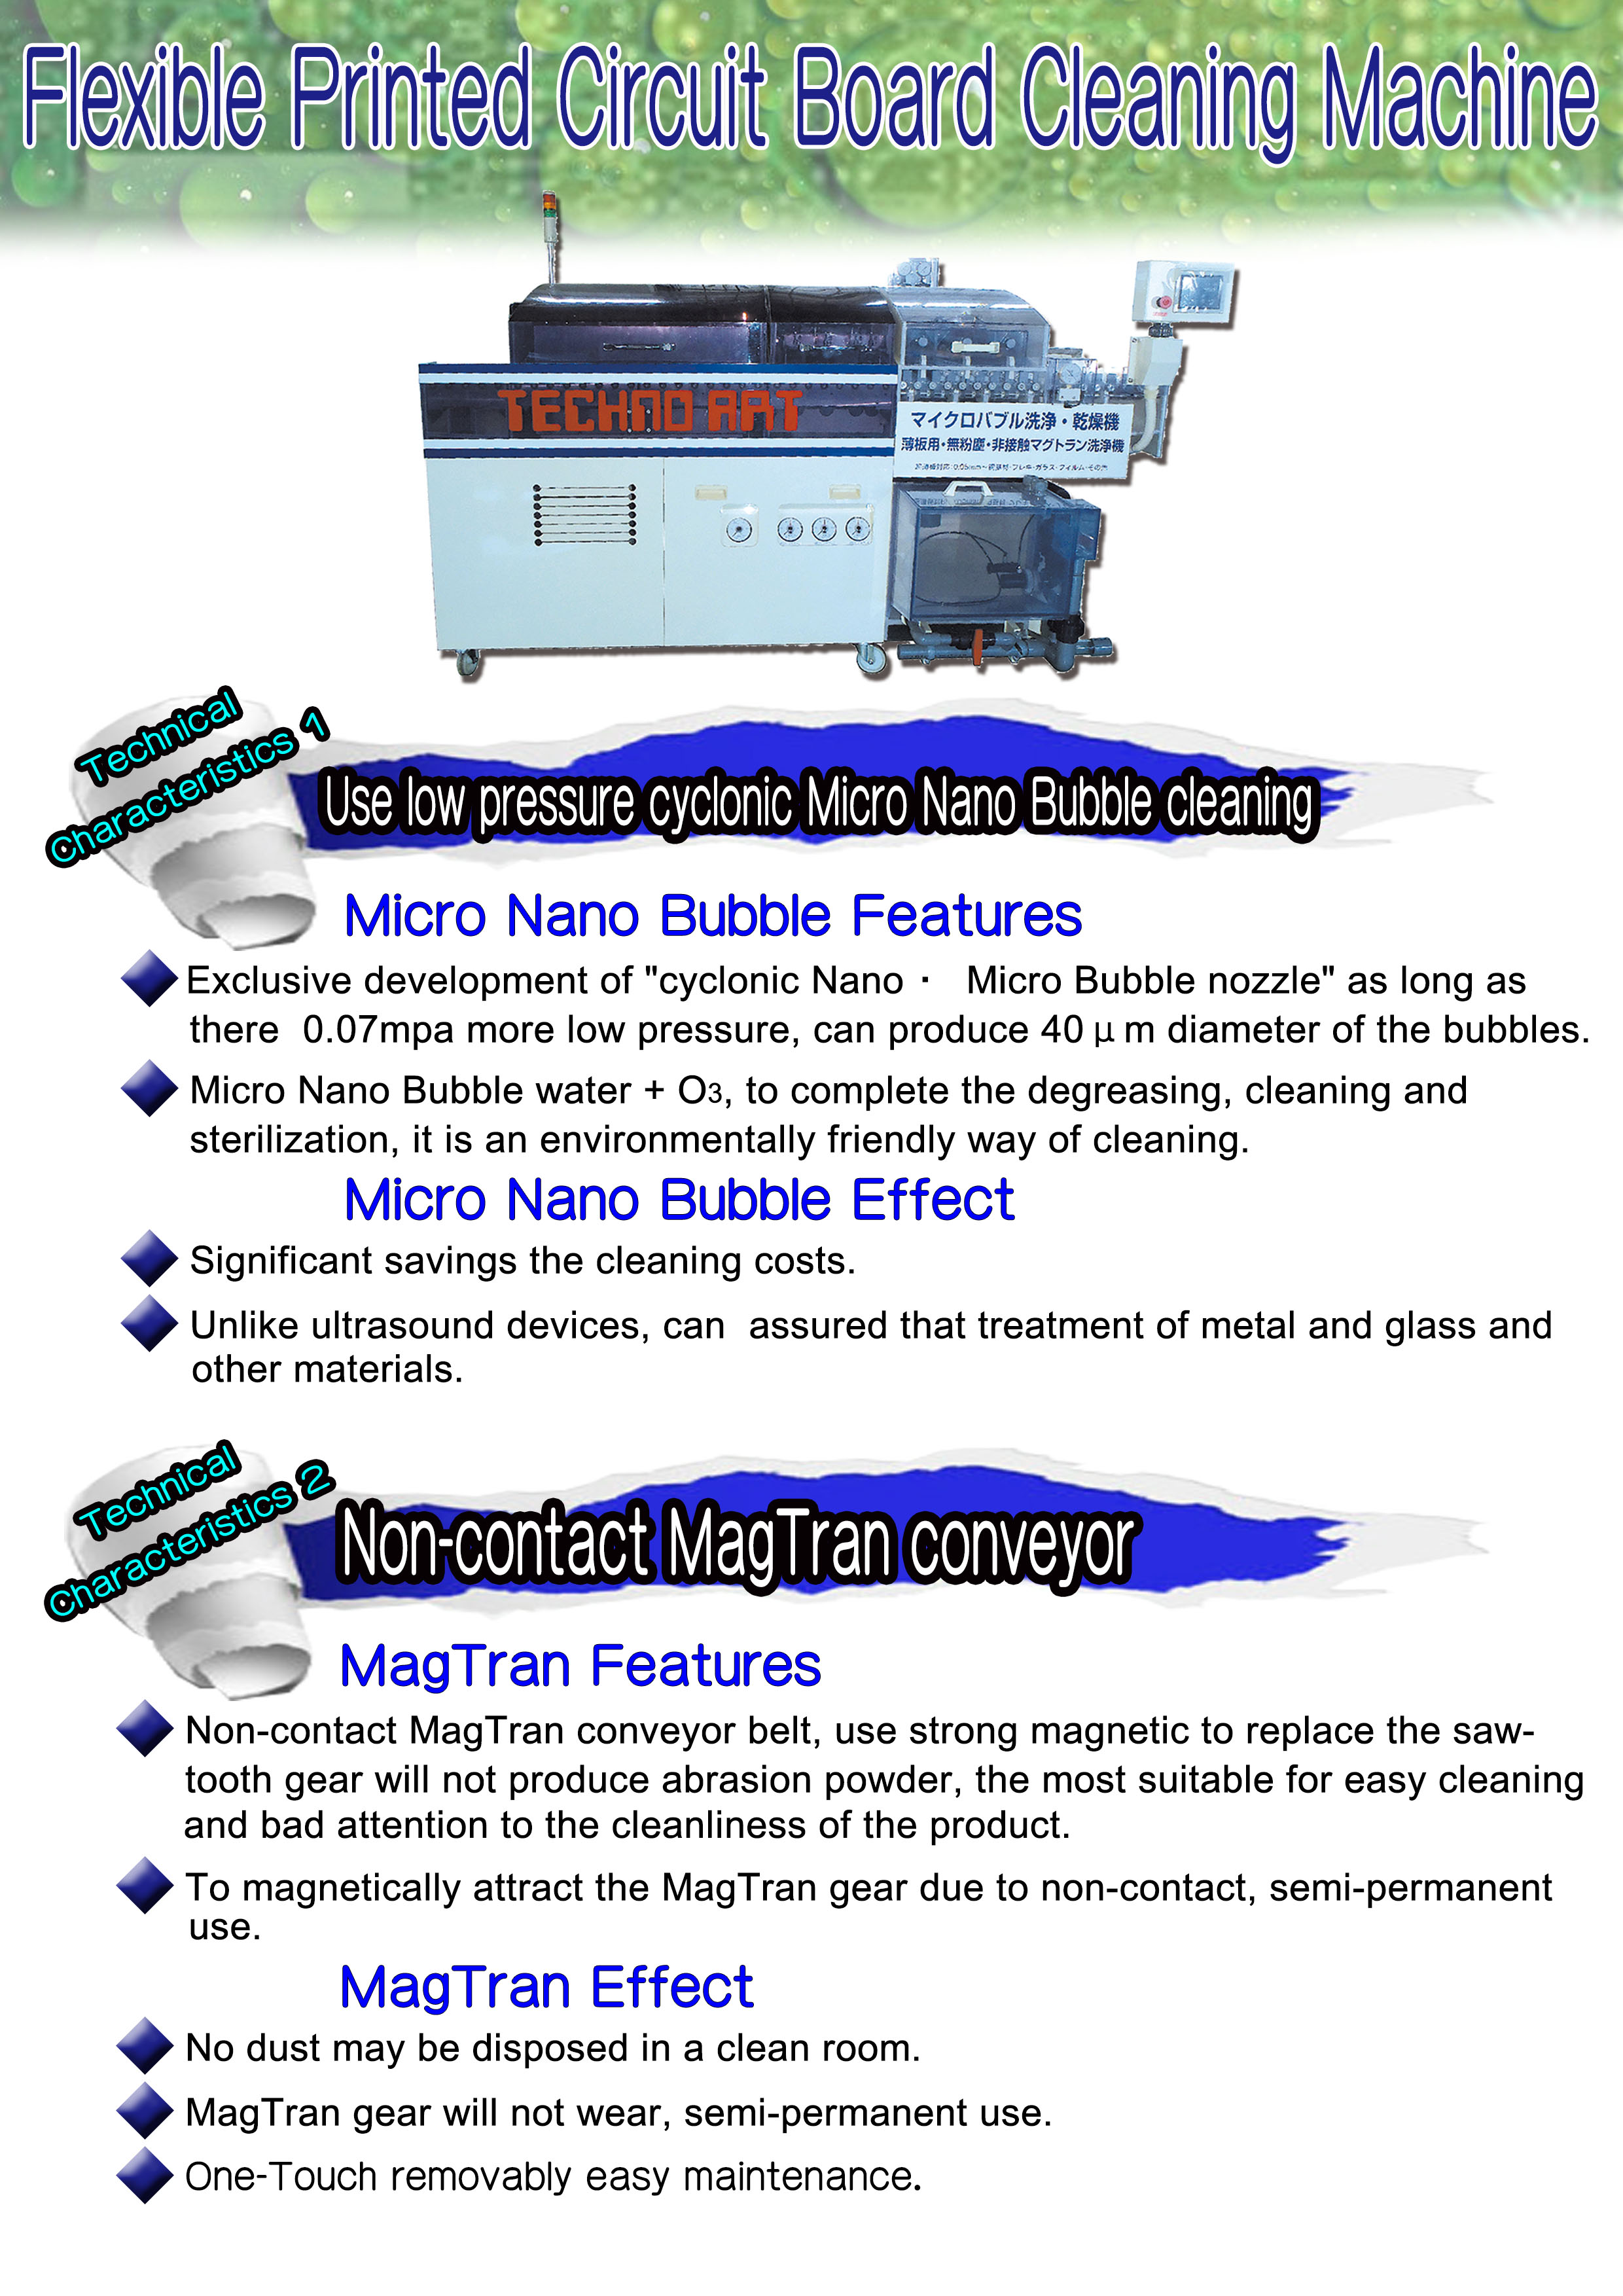 Printed Circuit Board Cleaning Machine